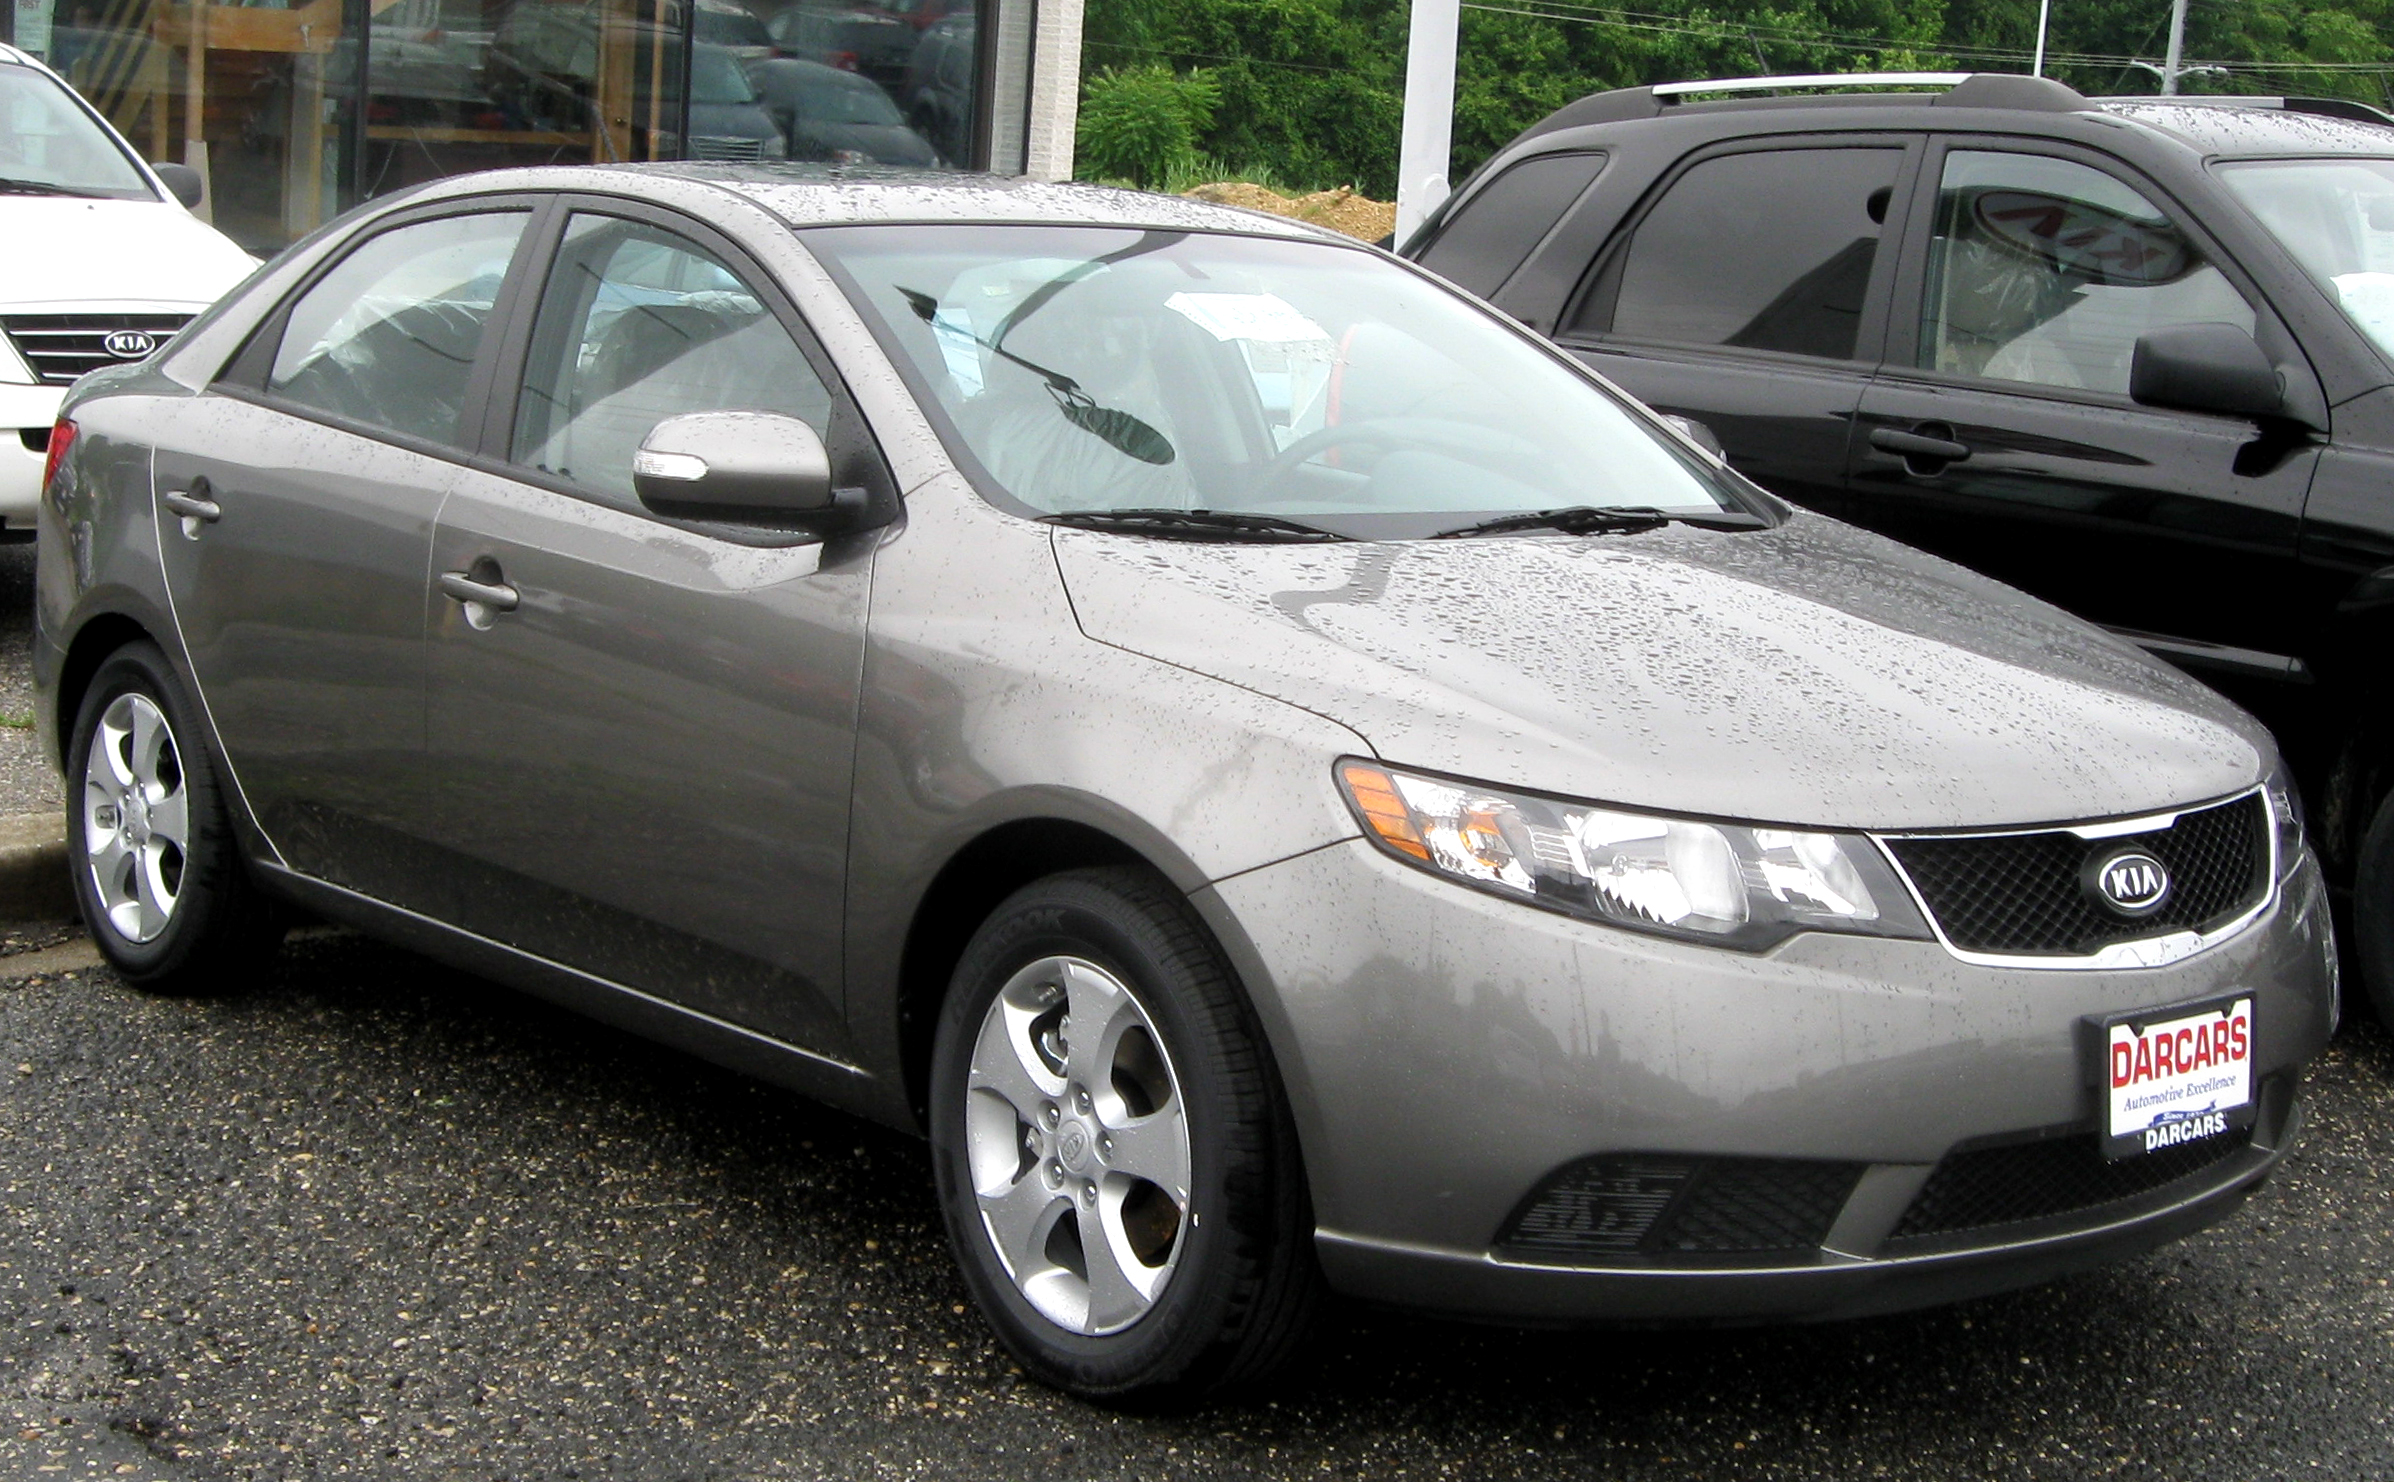 Captivating File:2010 Kia Forte EX 1